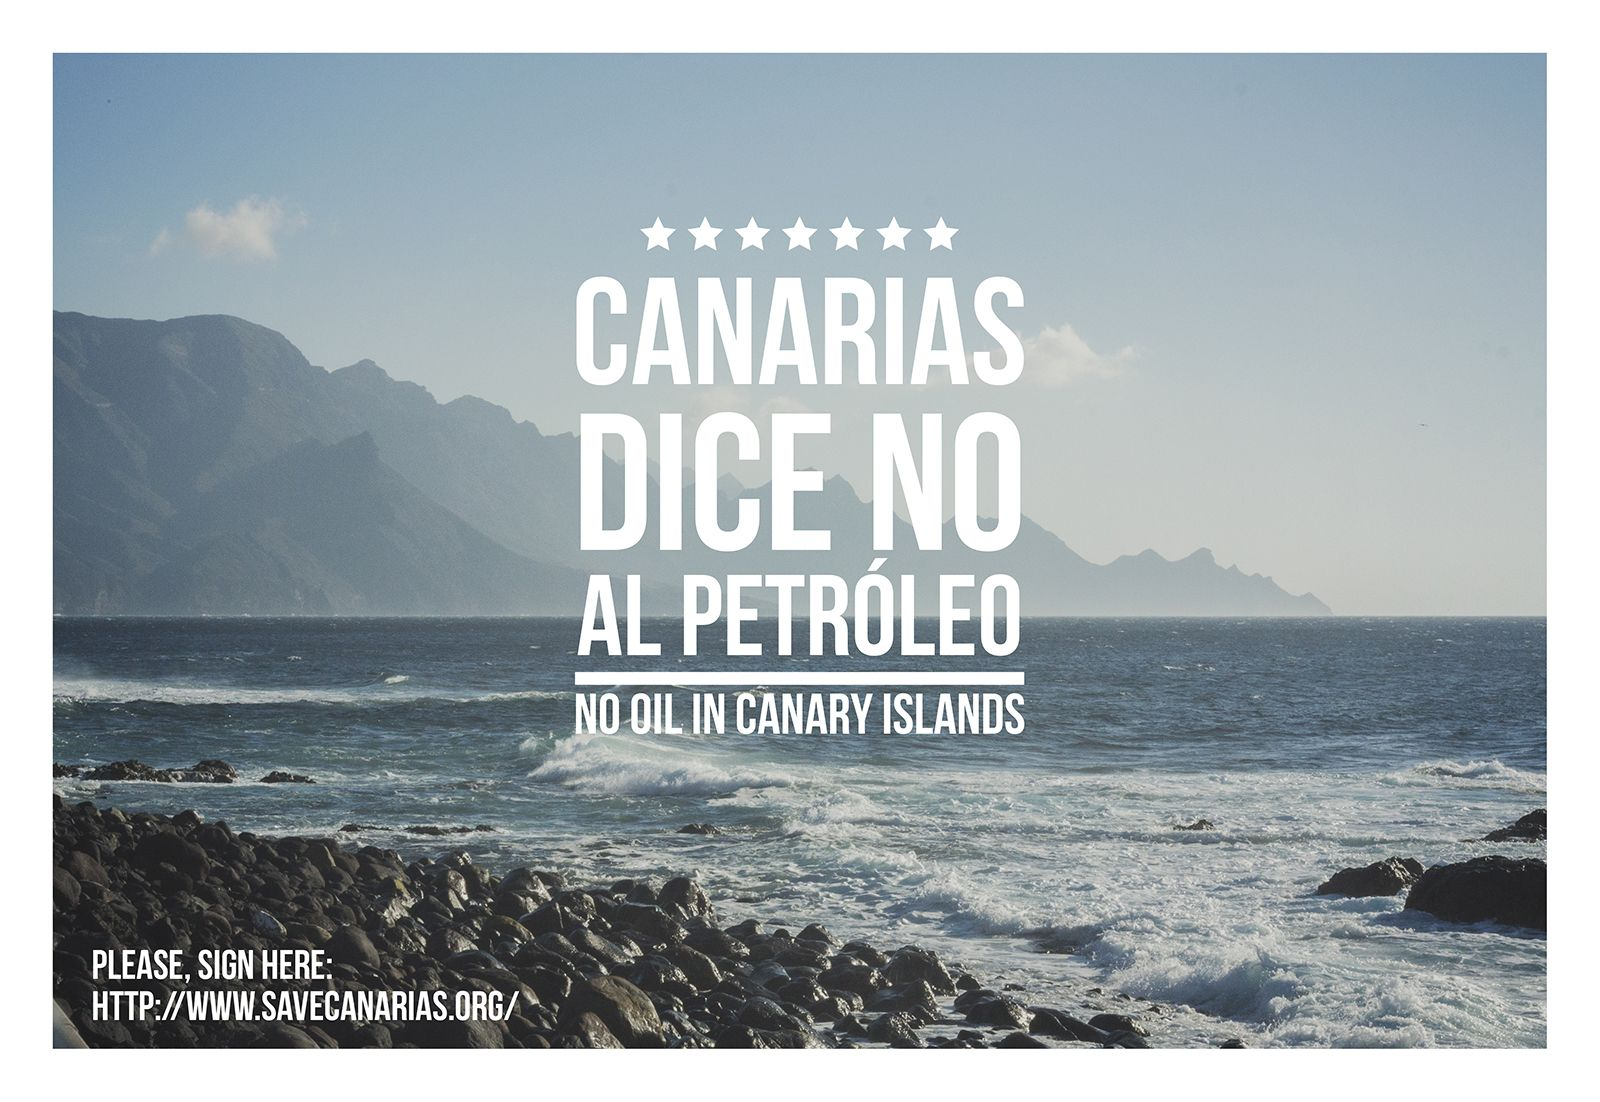 Please, sign here: http://www.savecanarias.org/